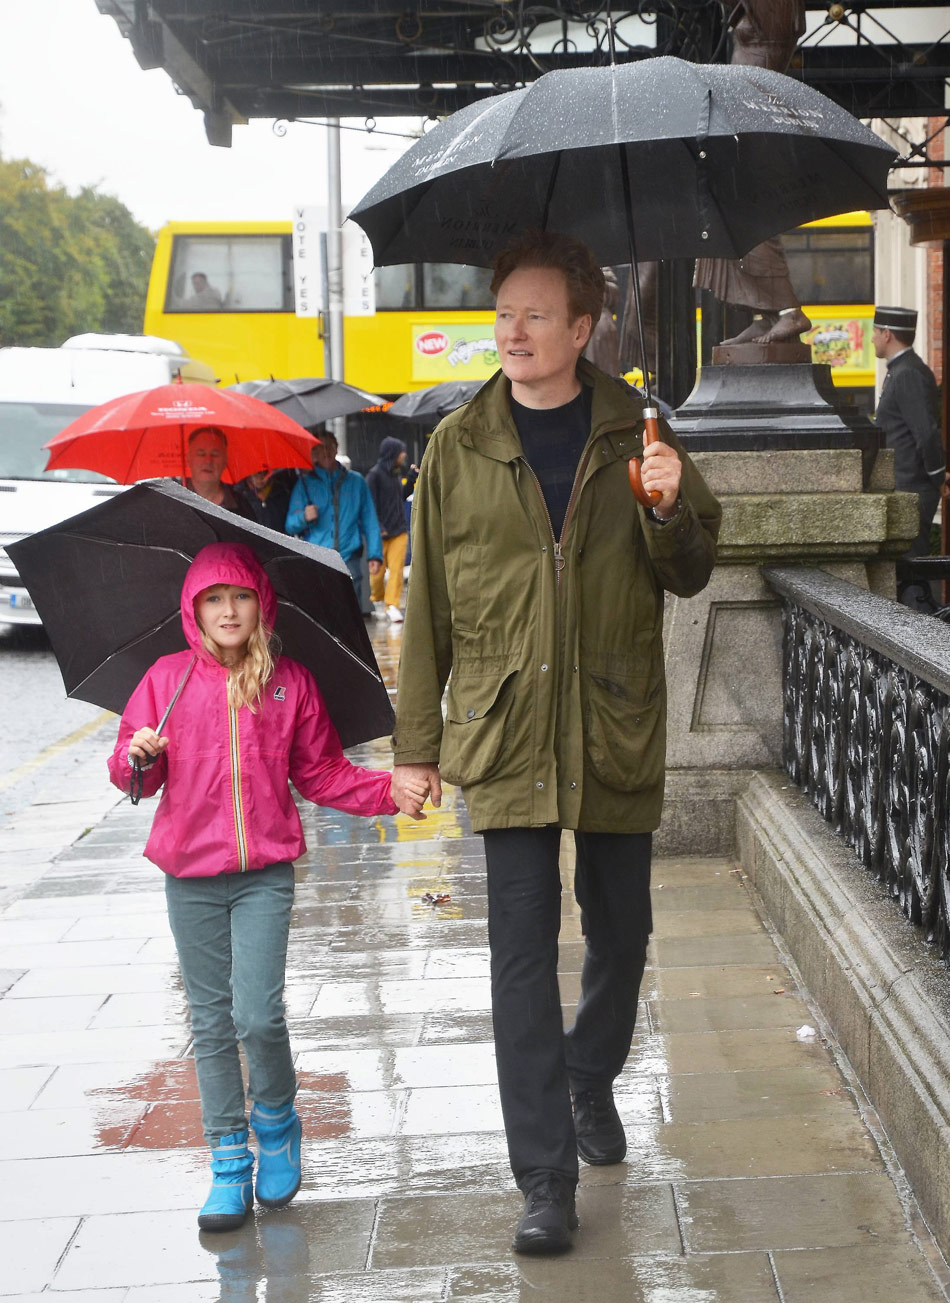 Conan O'brien with daughter Neve holding hands in Dublin